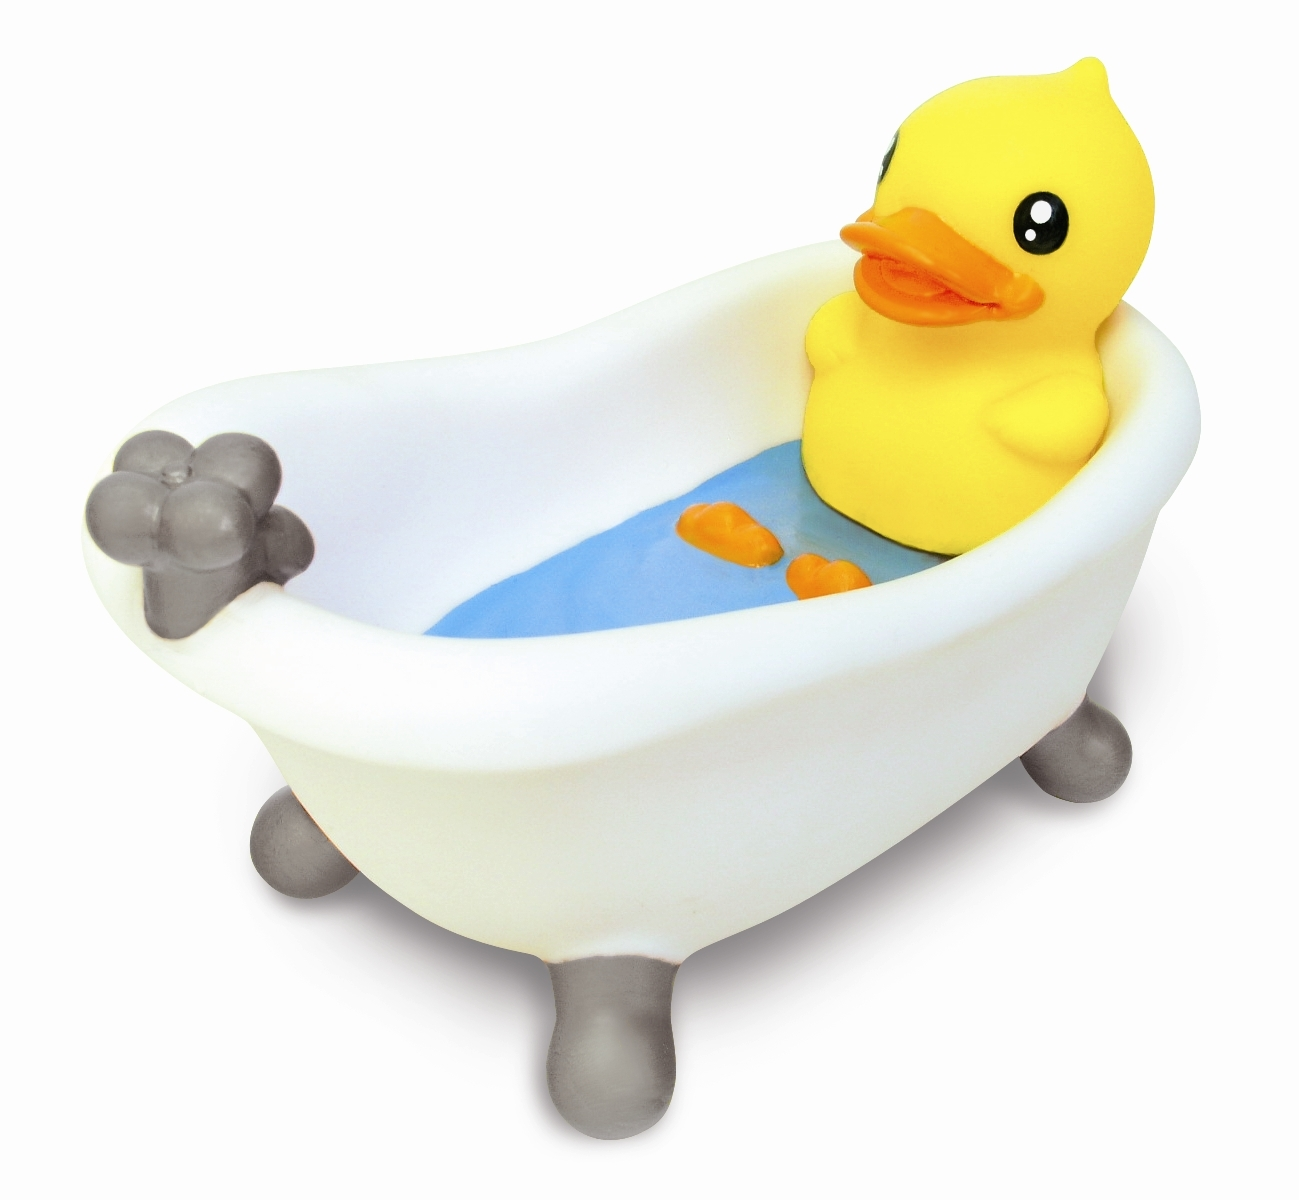 Sentinel B Duck Bathroom Soap Dish Holder Kids Childrens Rubber Gift Box Tray Basket